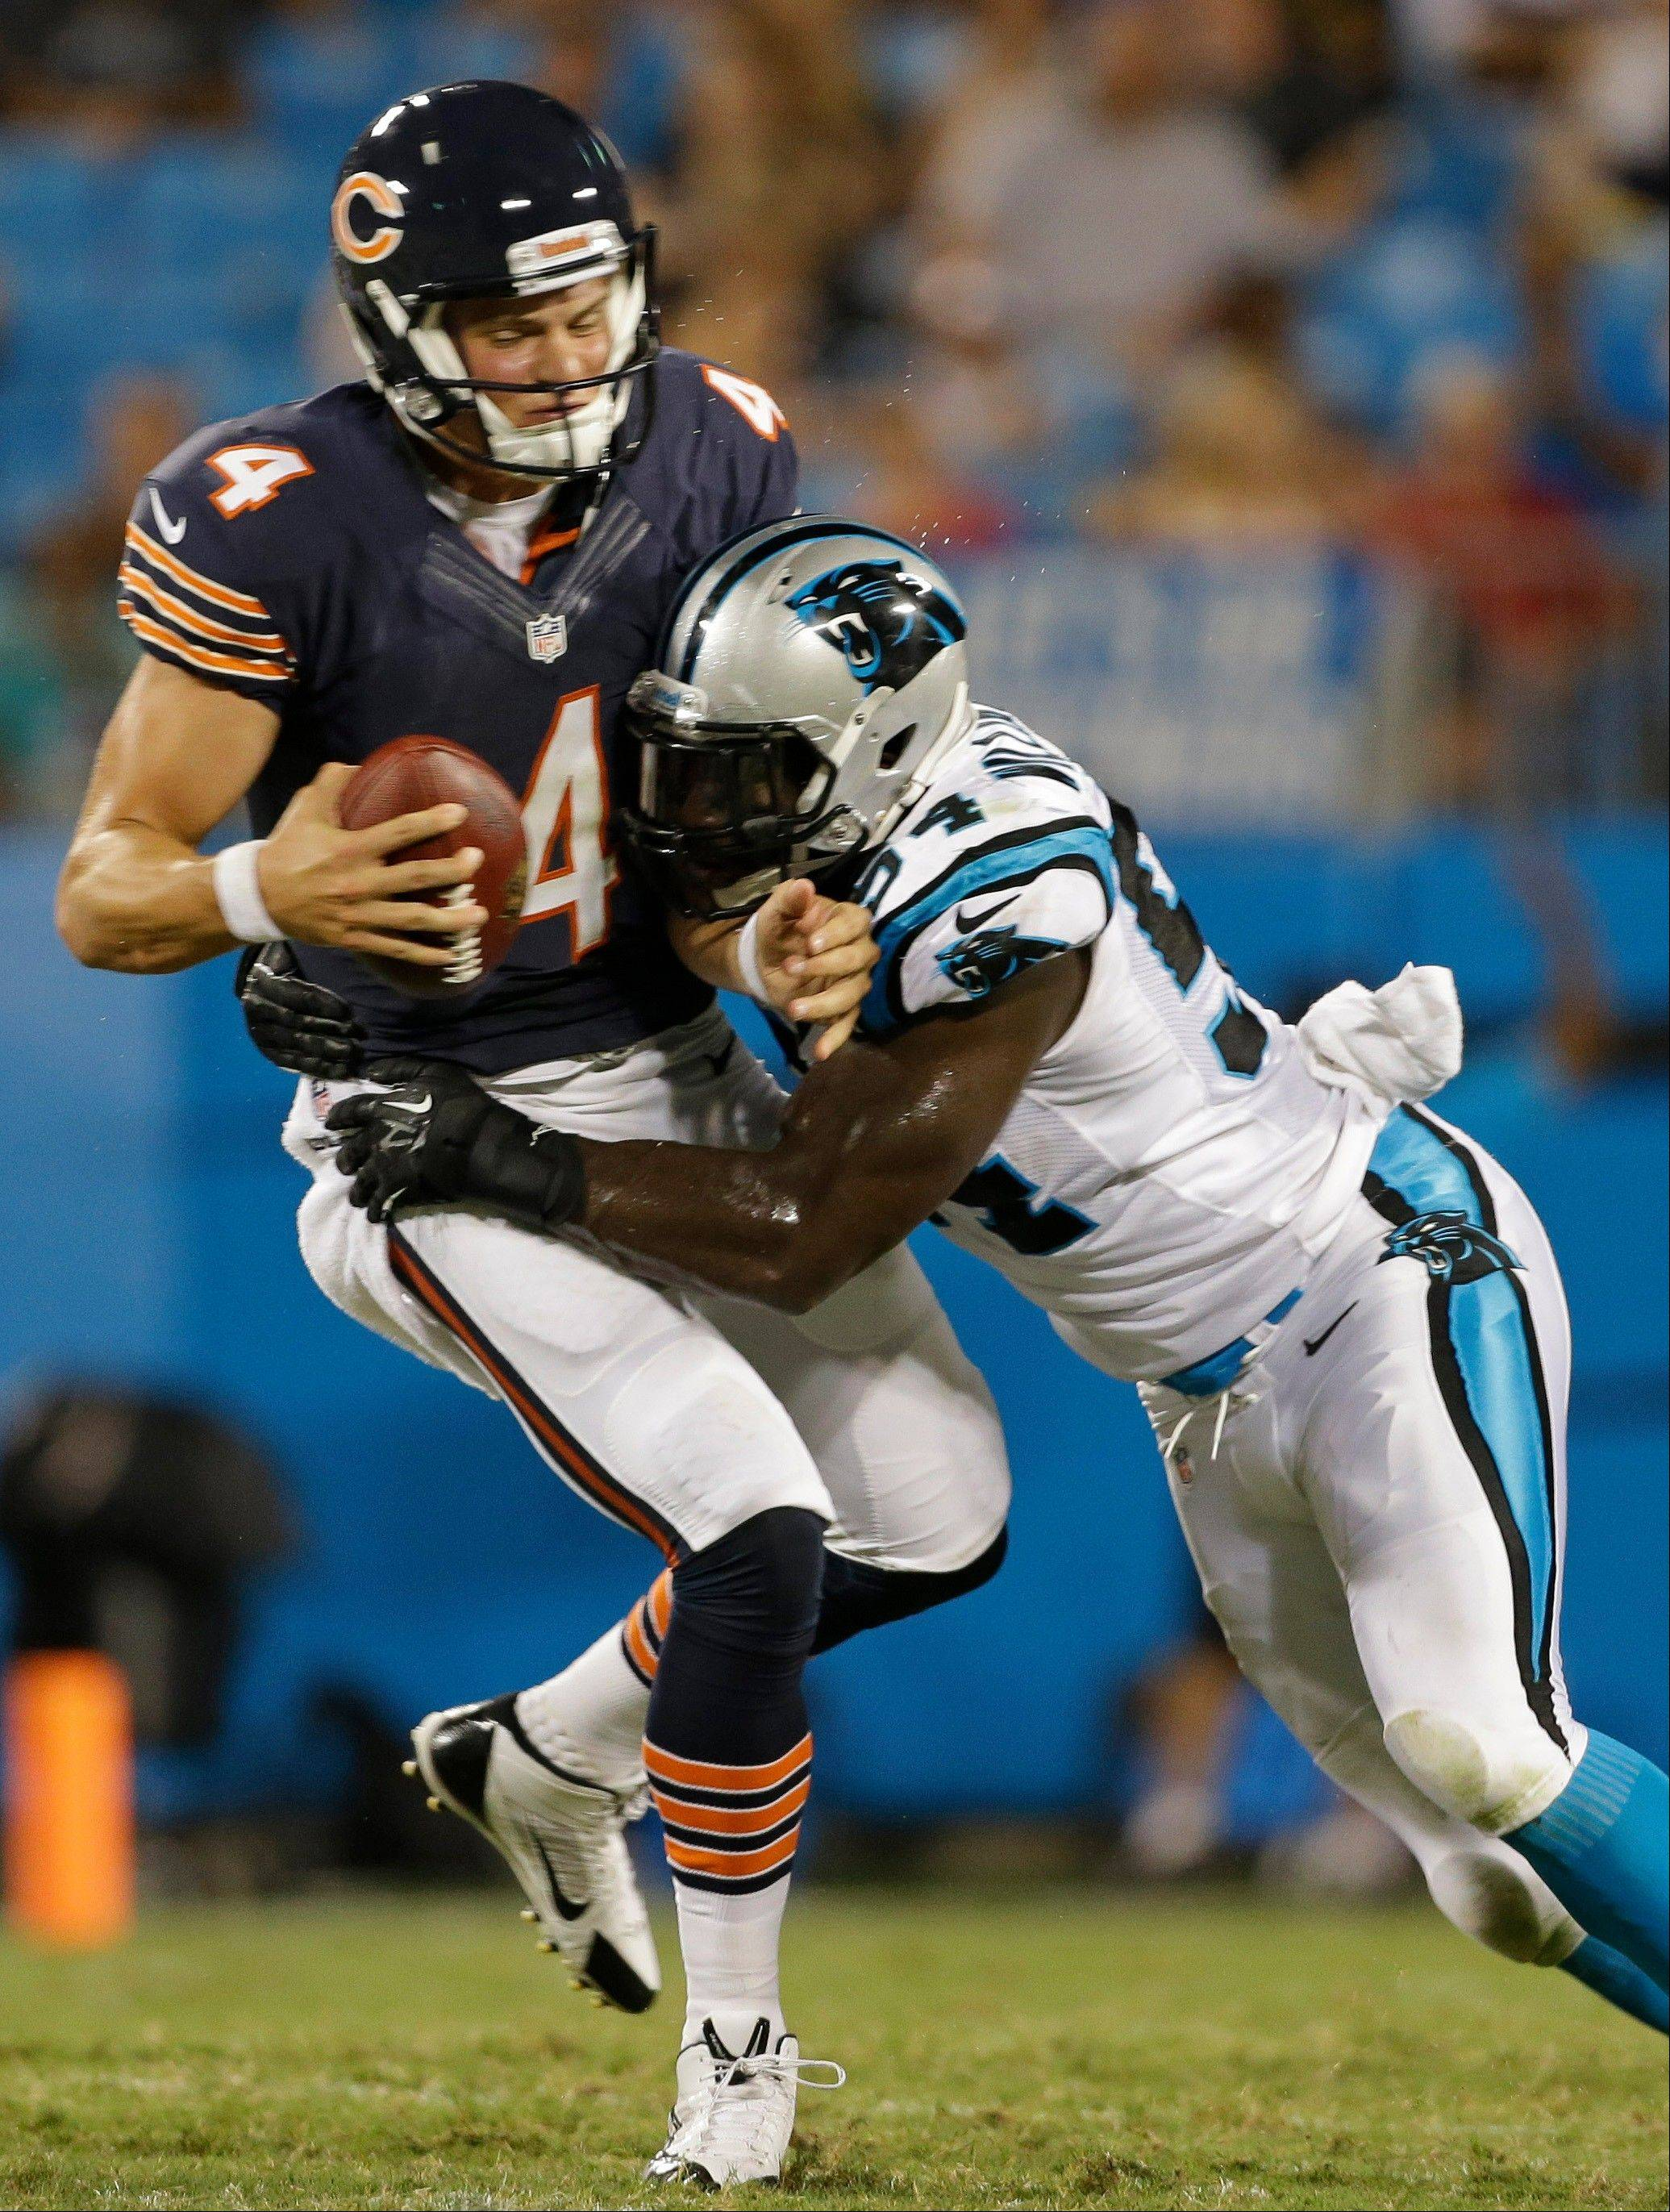 Bears quarterback Matt Blanchard is hit by the Panthers' Jason Williams on Friday during preseason action in Charlotte, N.C.